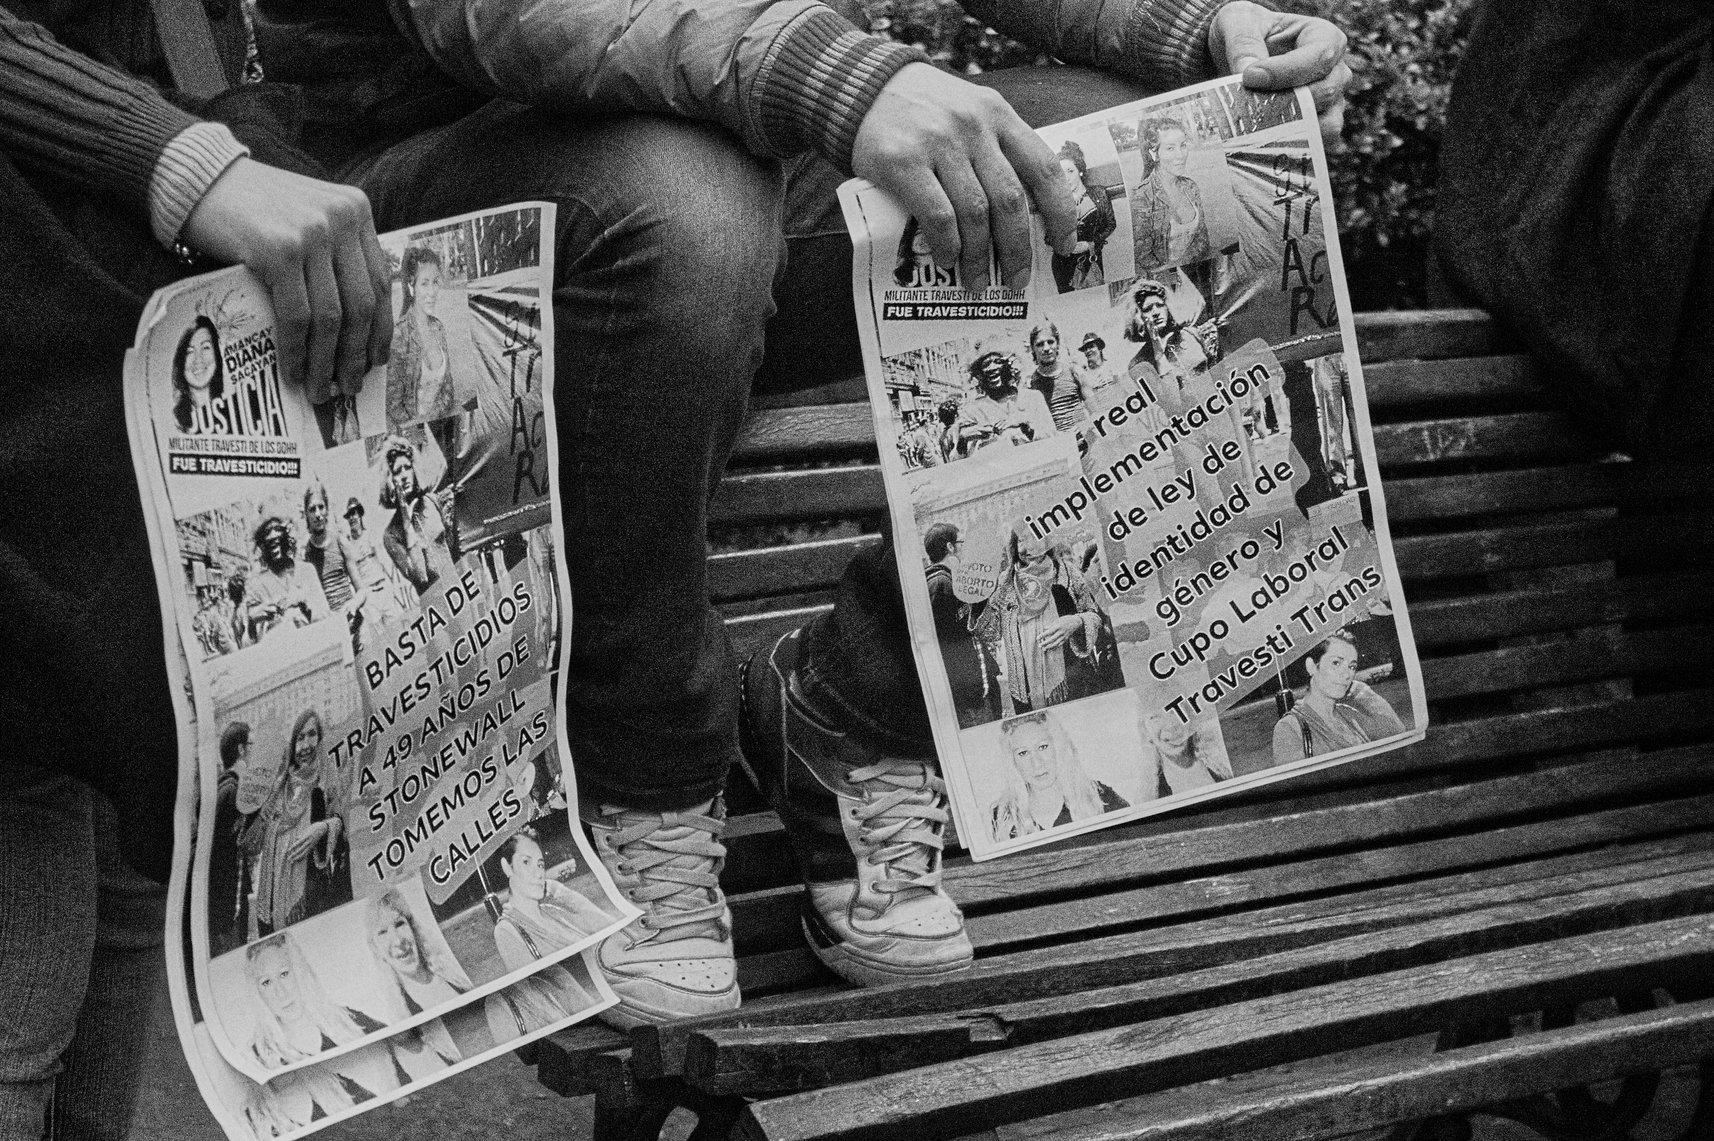 Black and white image of two people holding posters for a Trans Pride March, Argentina, 2018